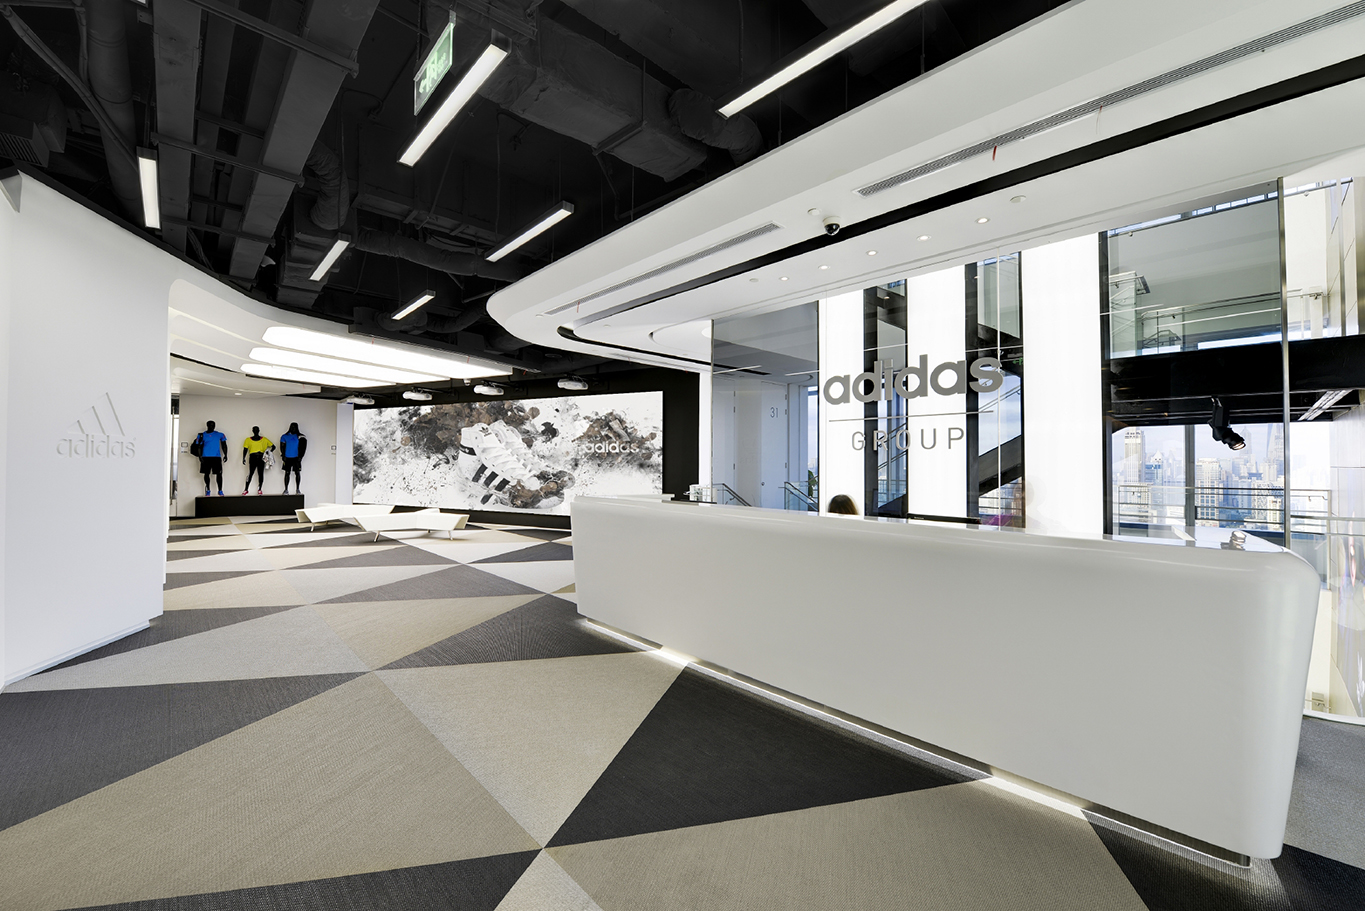 Adidas Shanghai Headquarter, China (1)